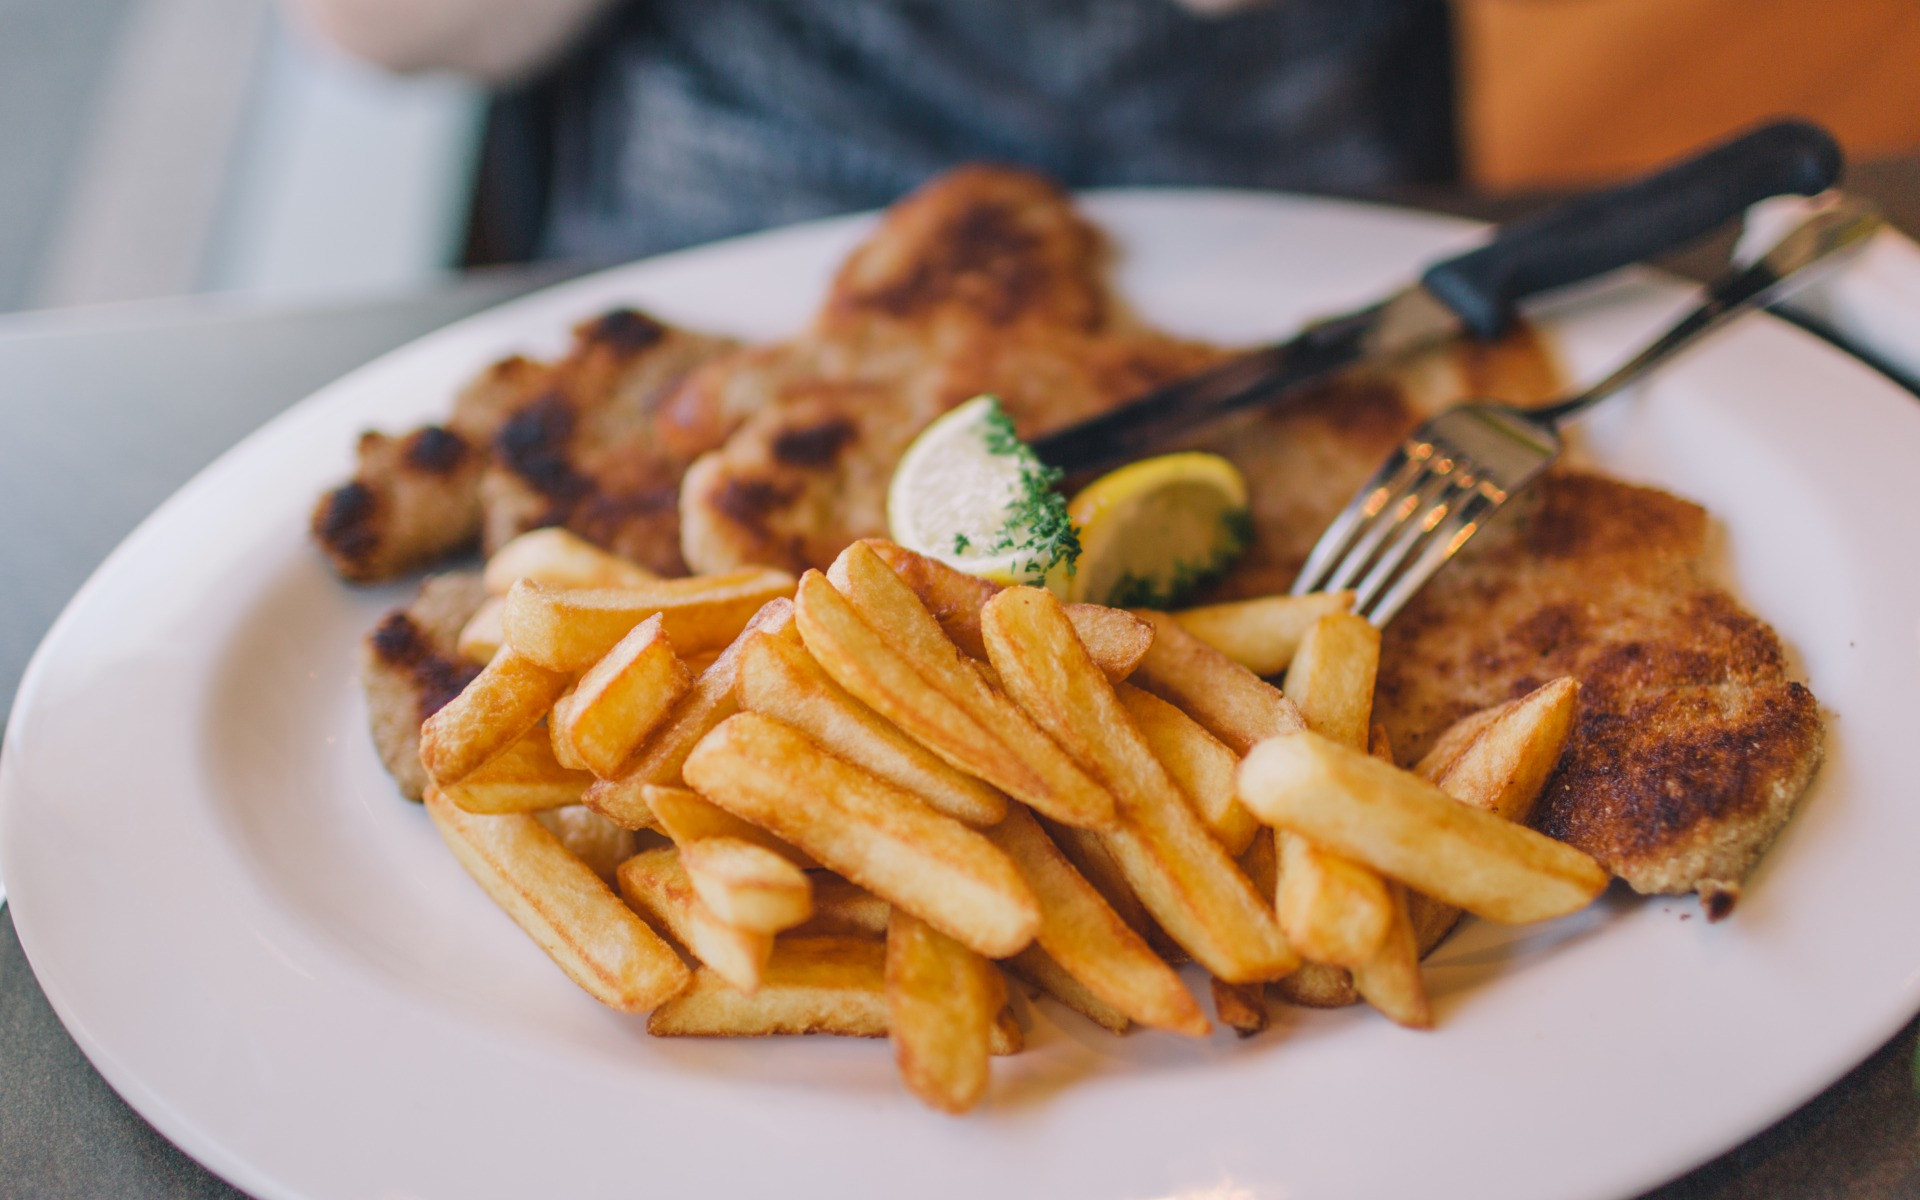 Barbecue with fries